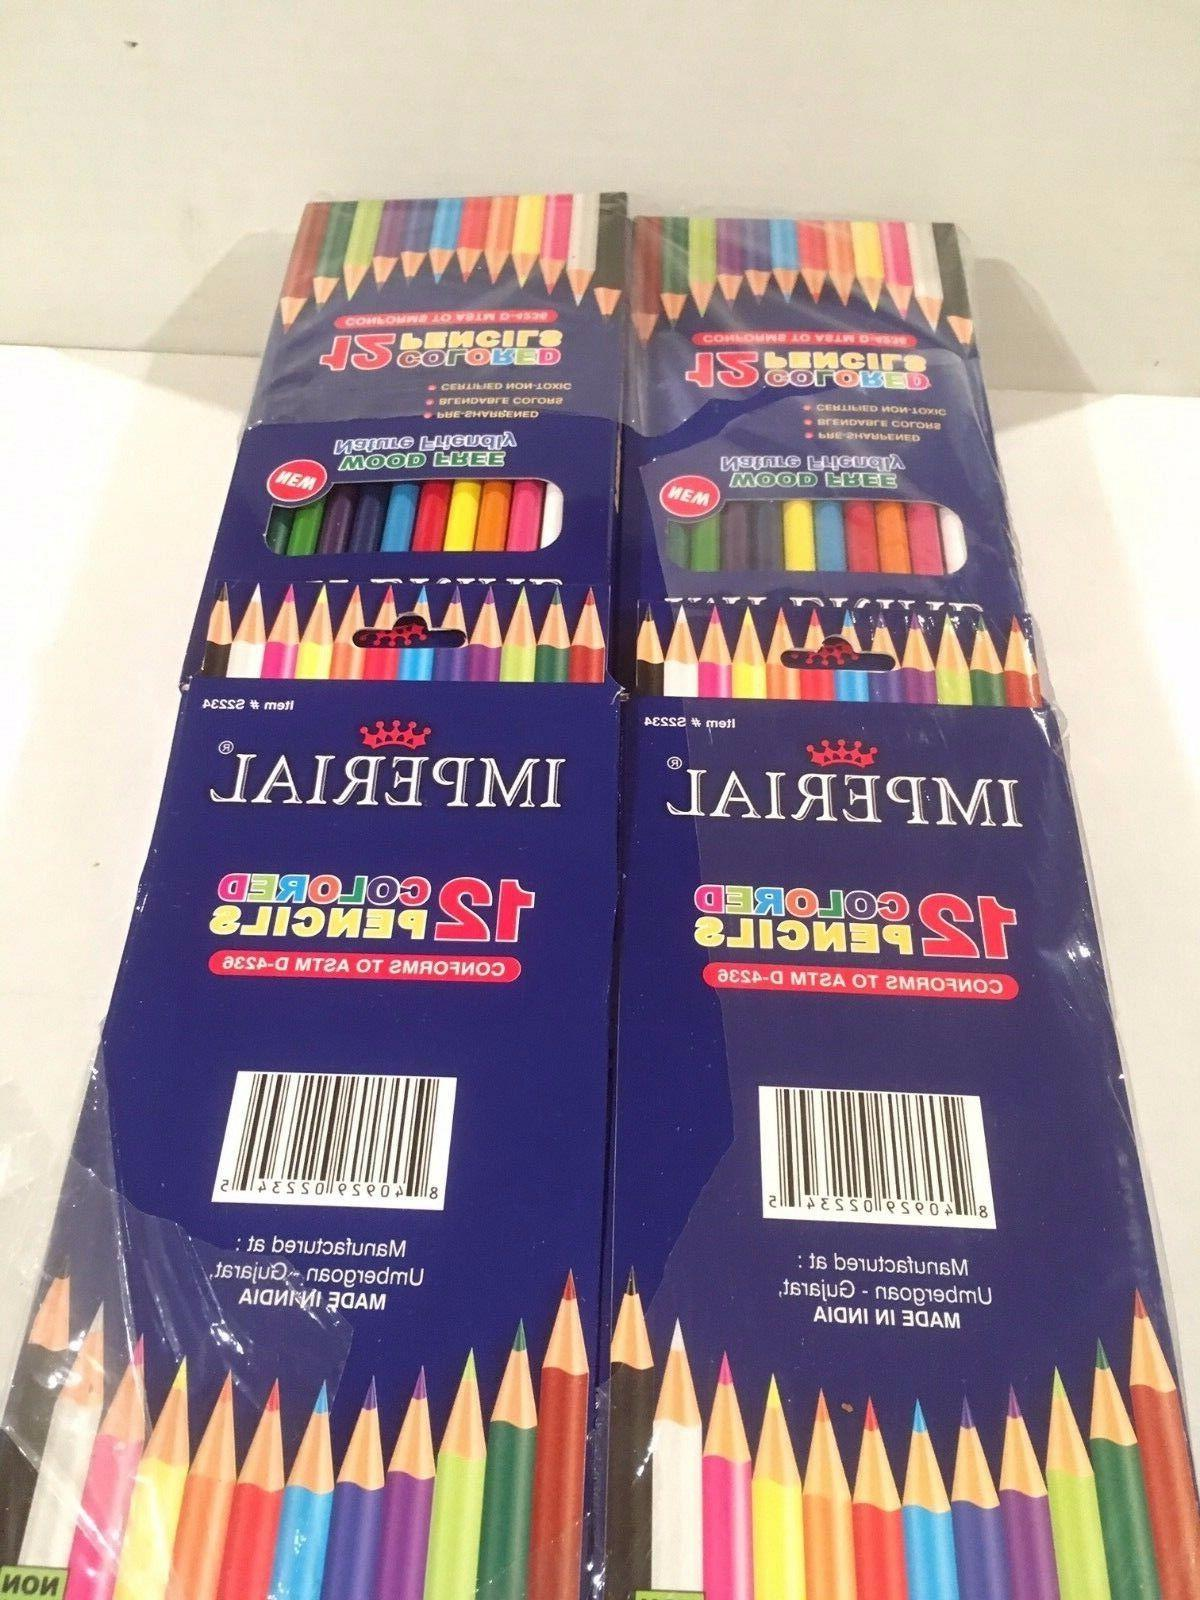 20 Packs of 12 Colored Pencils